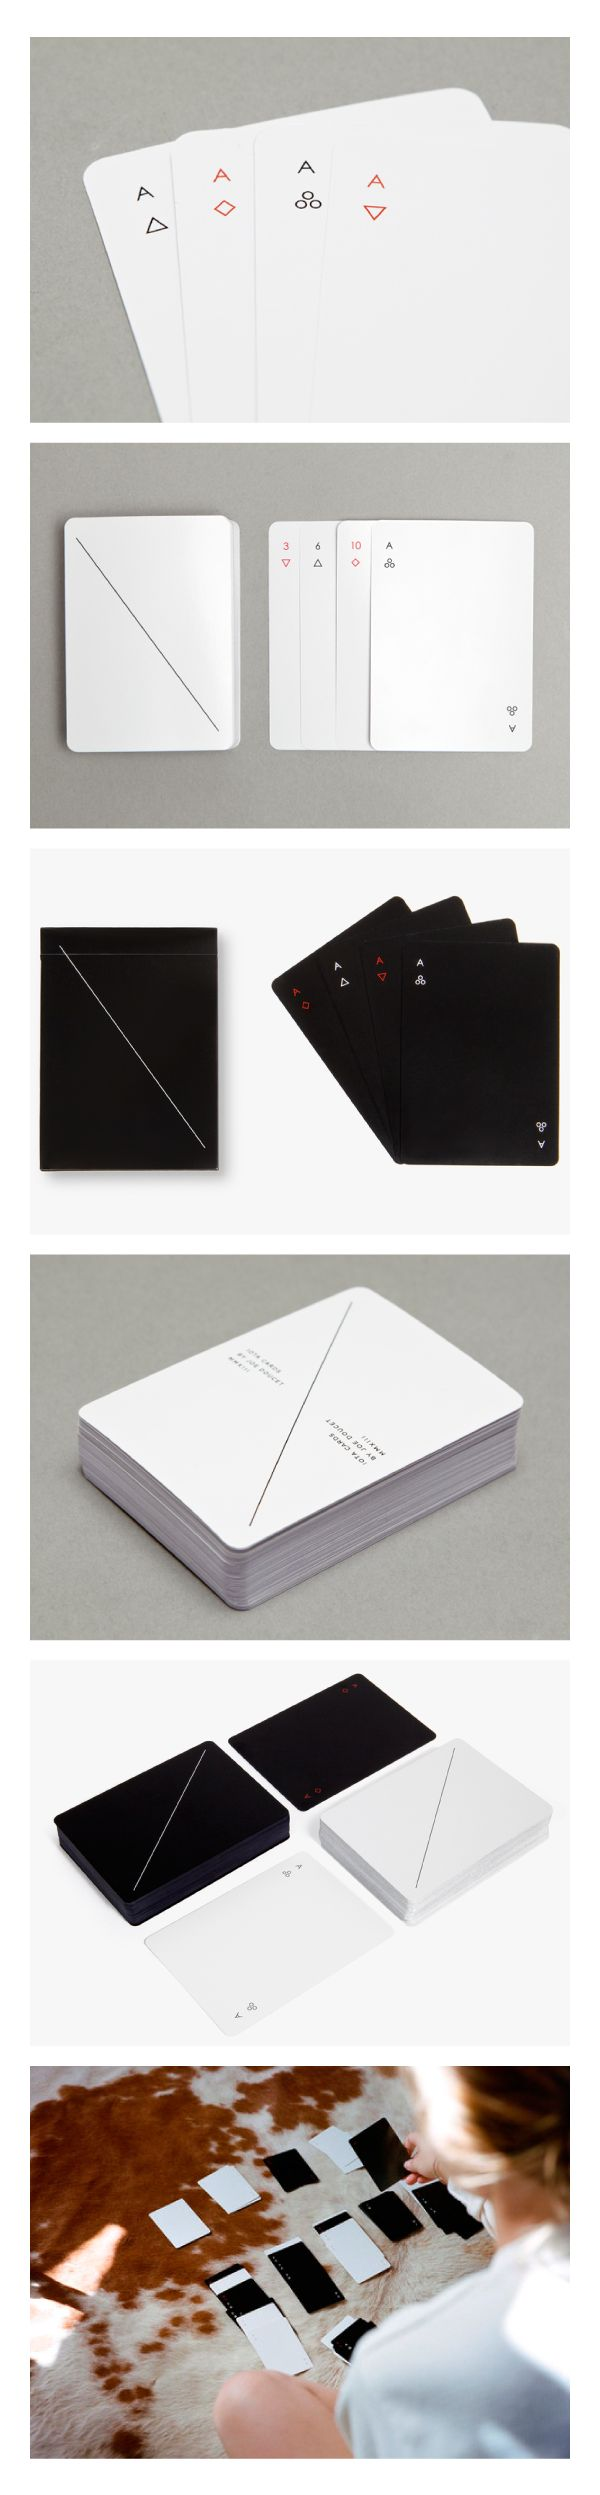 MINIM is a deck of regulation playing cards designed by Joe Doucet that dallies with the idea of how much you can take away while still maintaining a playable deck. Simple geometric symbols are reductive versions of hearts, clubs, diamonds and spades and while it's necessary to mark the back of regulation playing cards, we've done so with a minimal diagonal line.